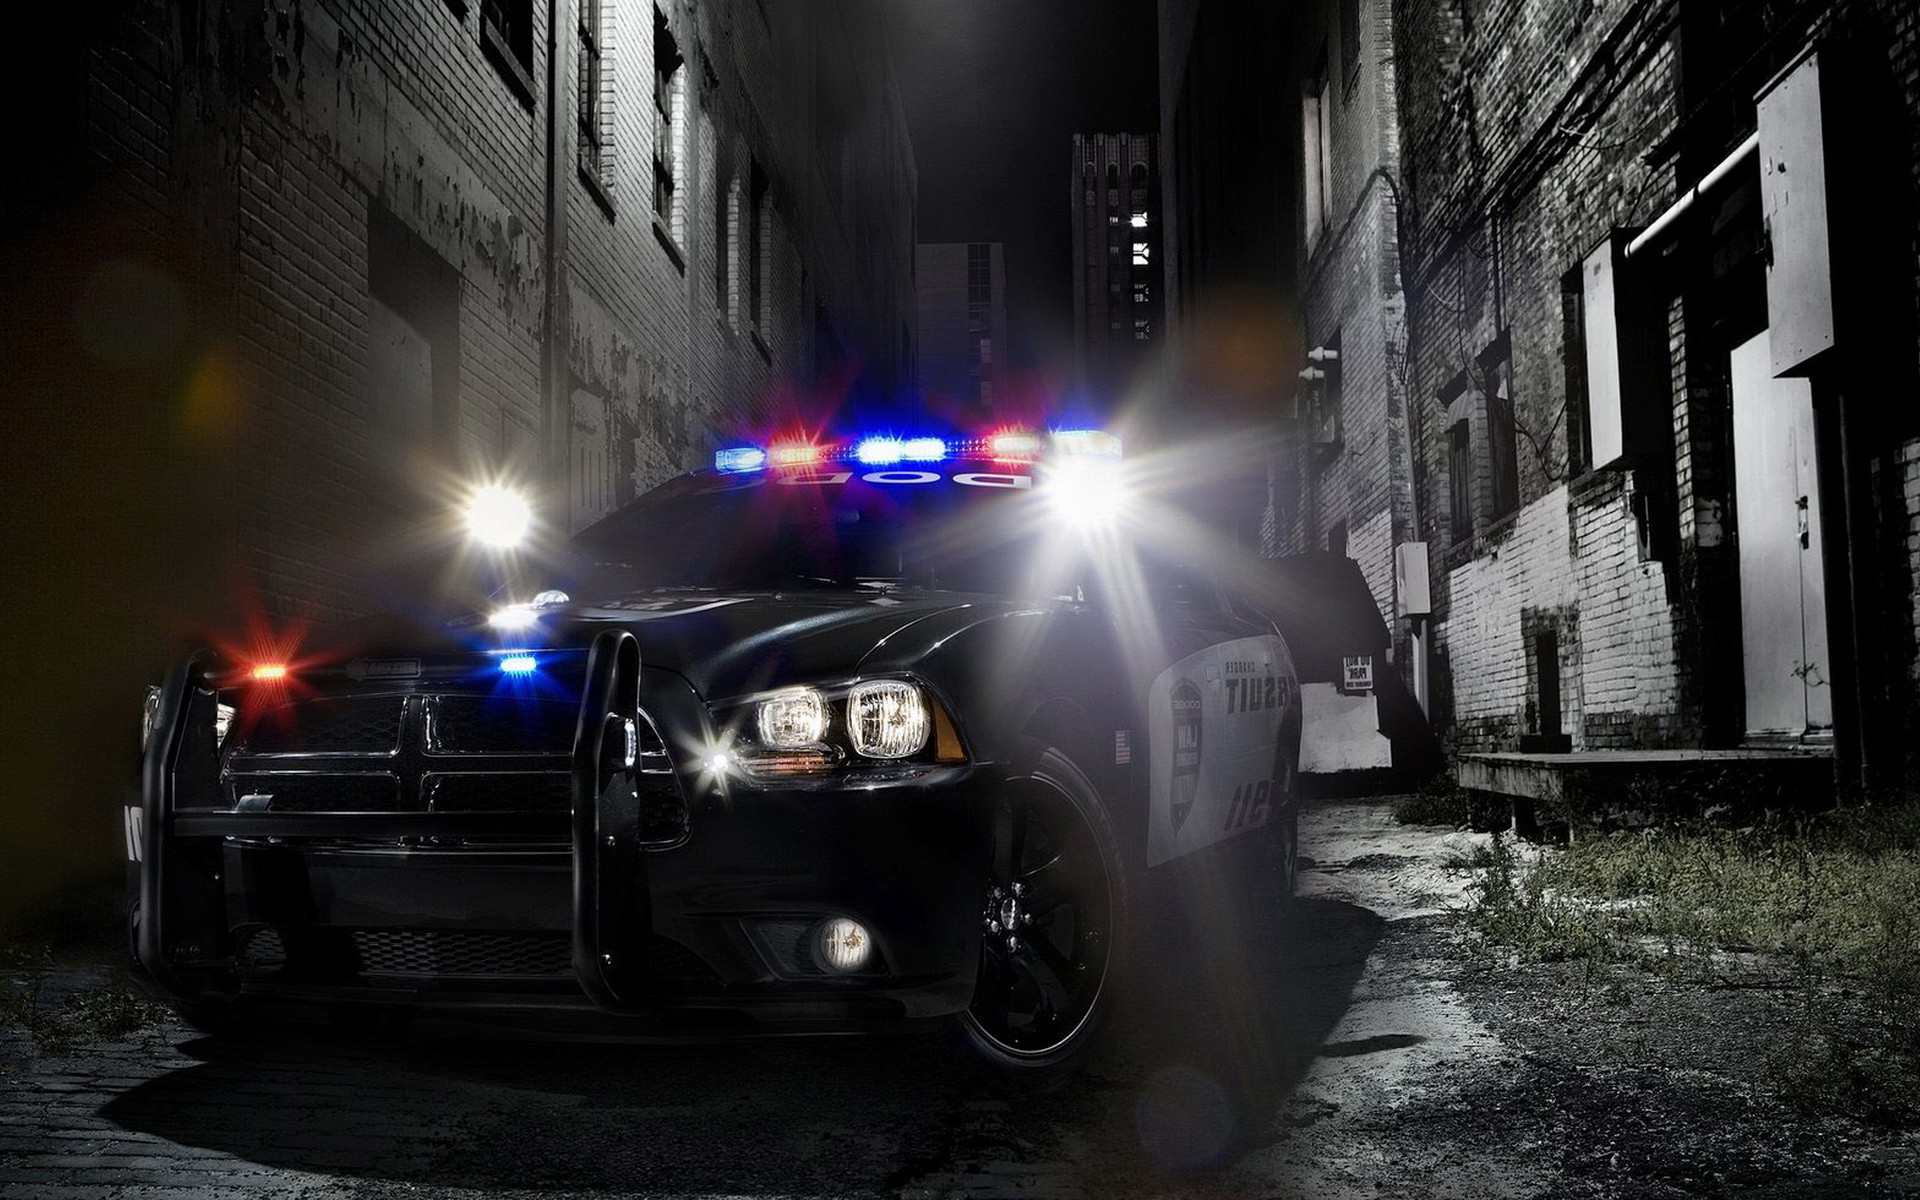 Police Car Wallpaper Backgrounds (66+ images)